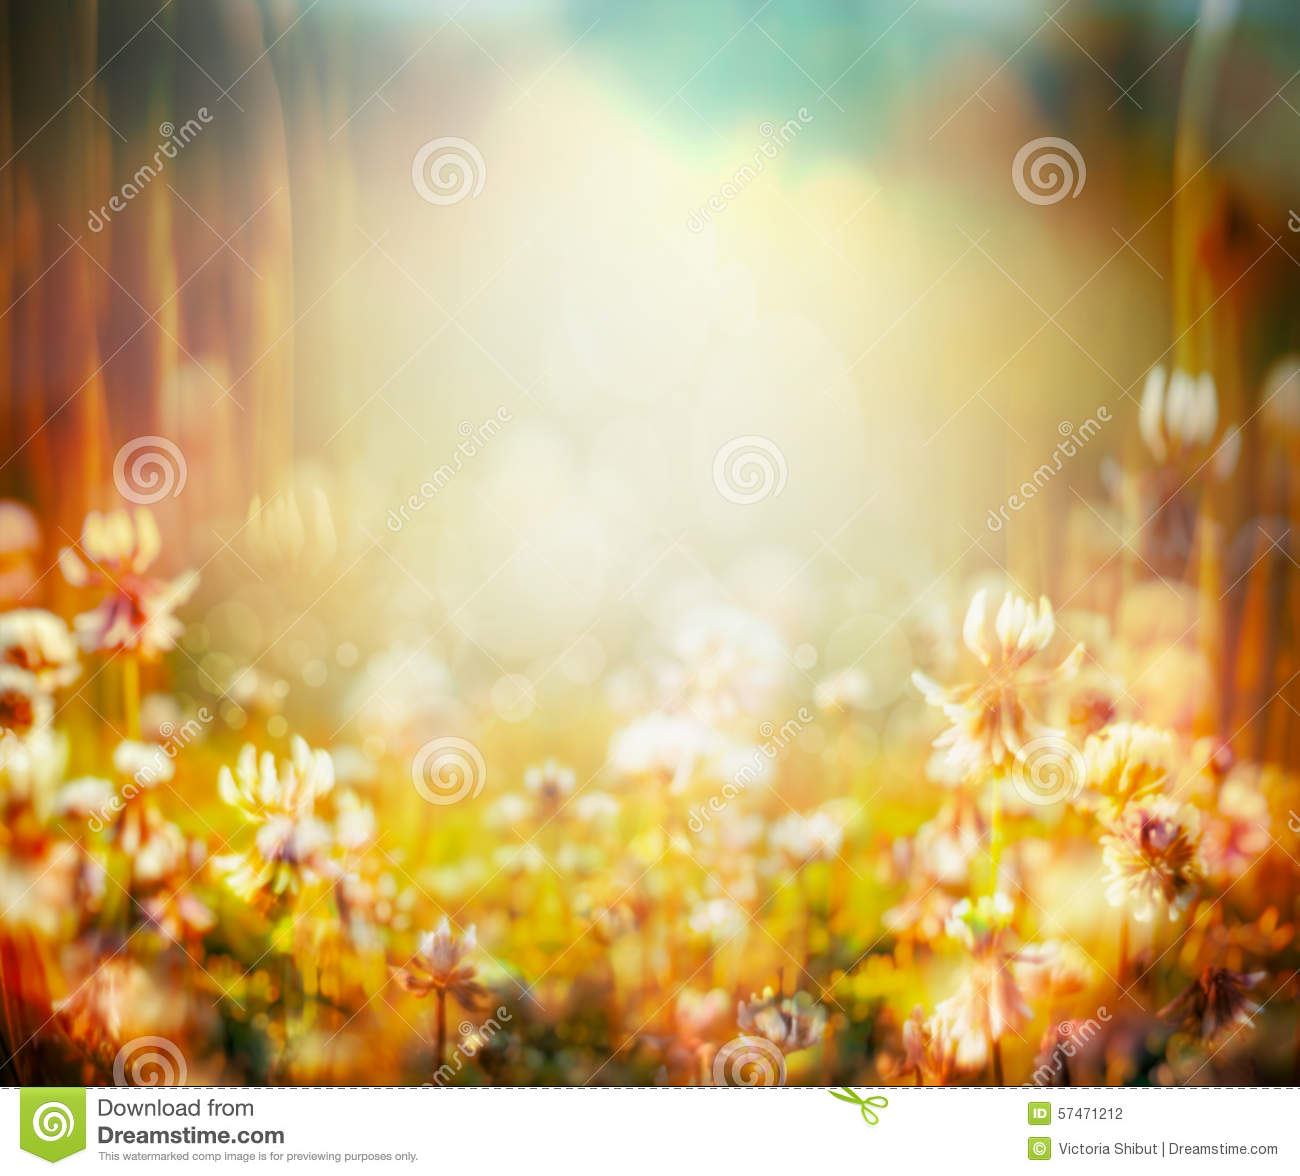 Fall Leaves Watercolor Wallpaper Autumn Or Summer Blurred Nature Background With Flowers